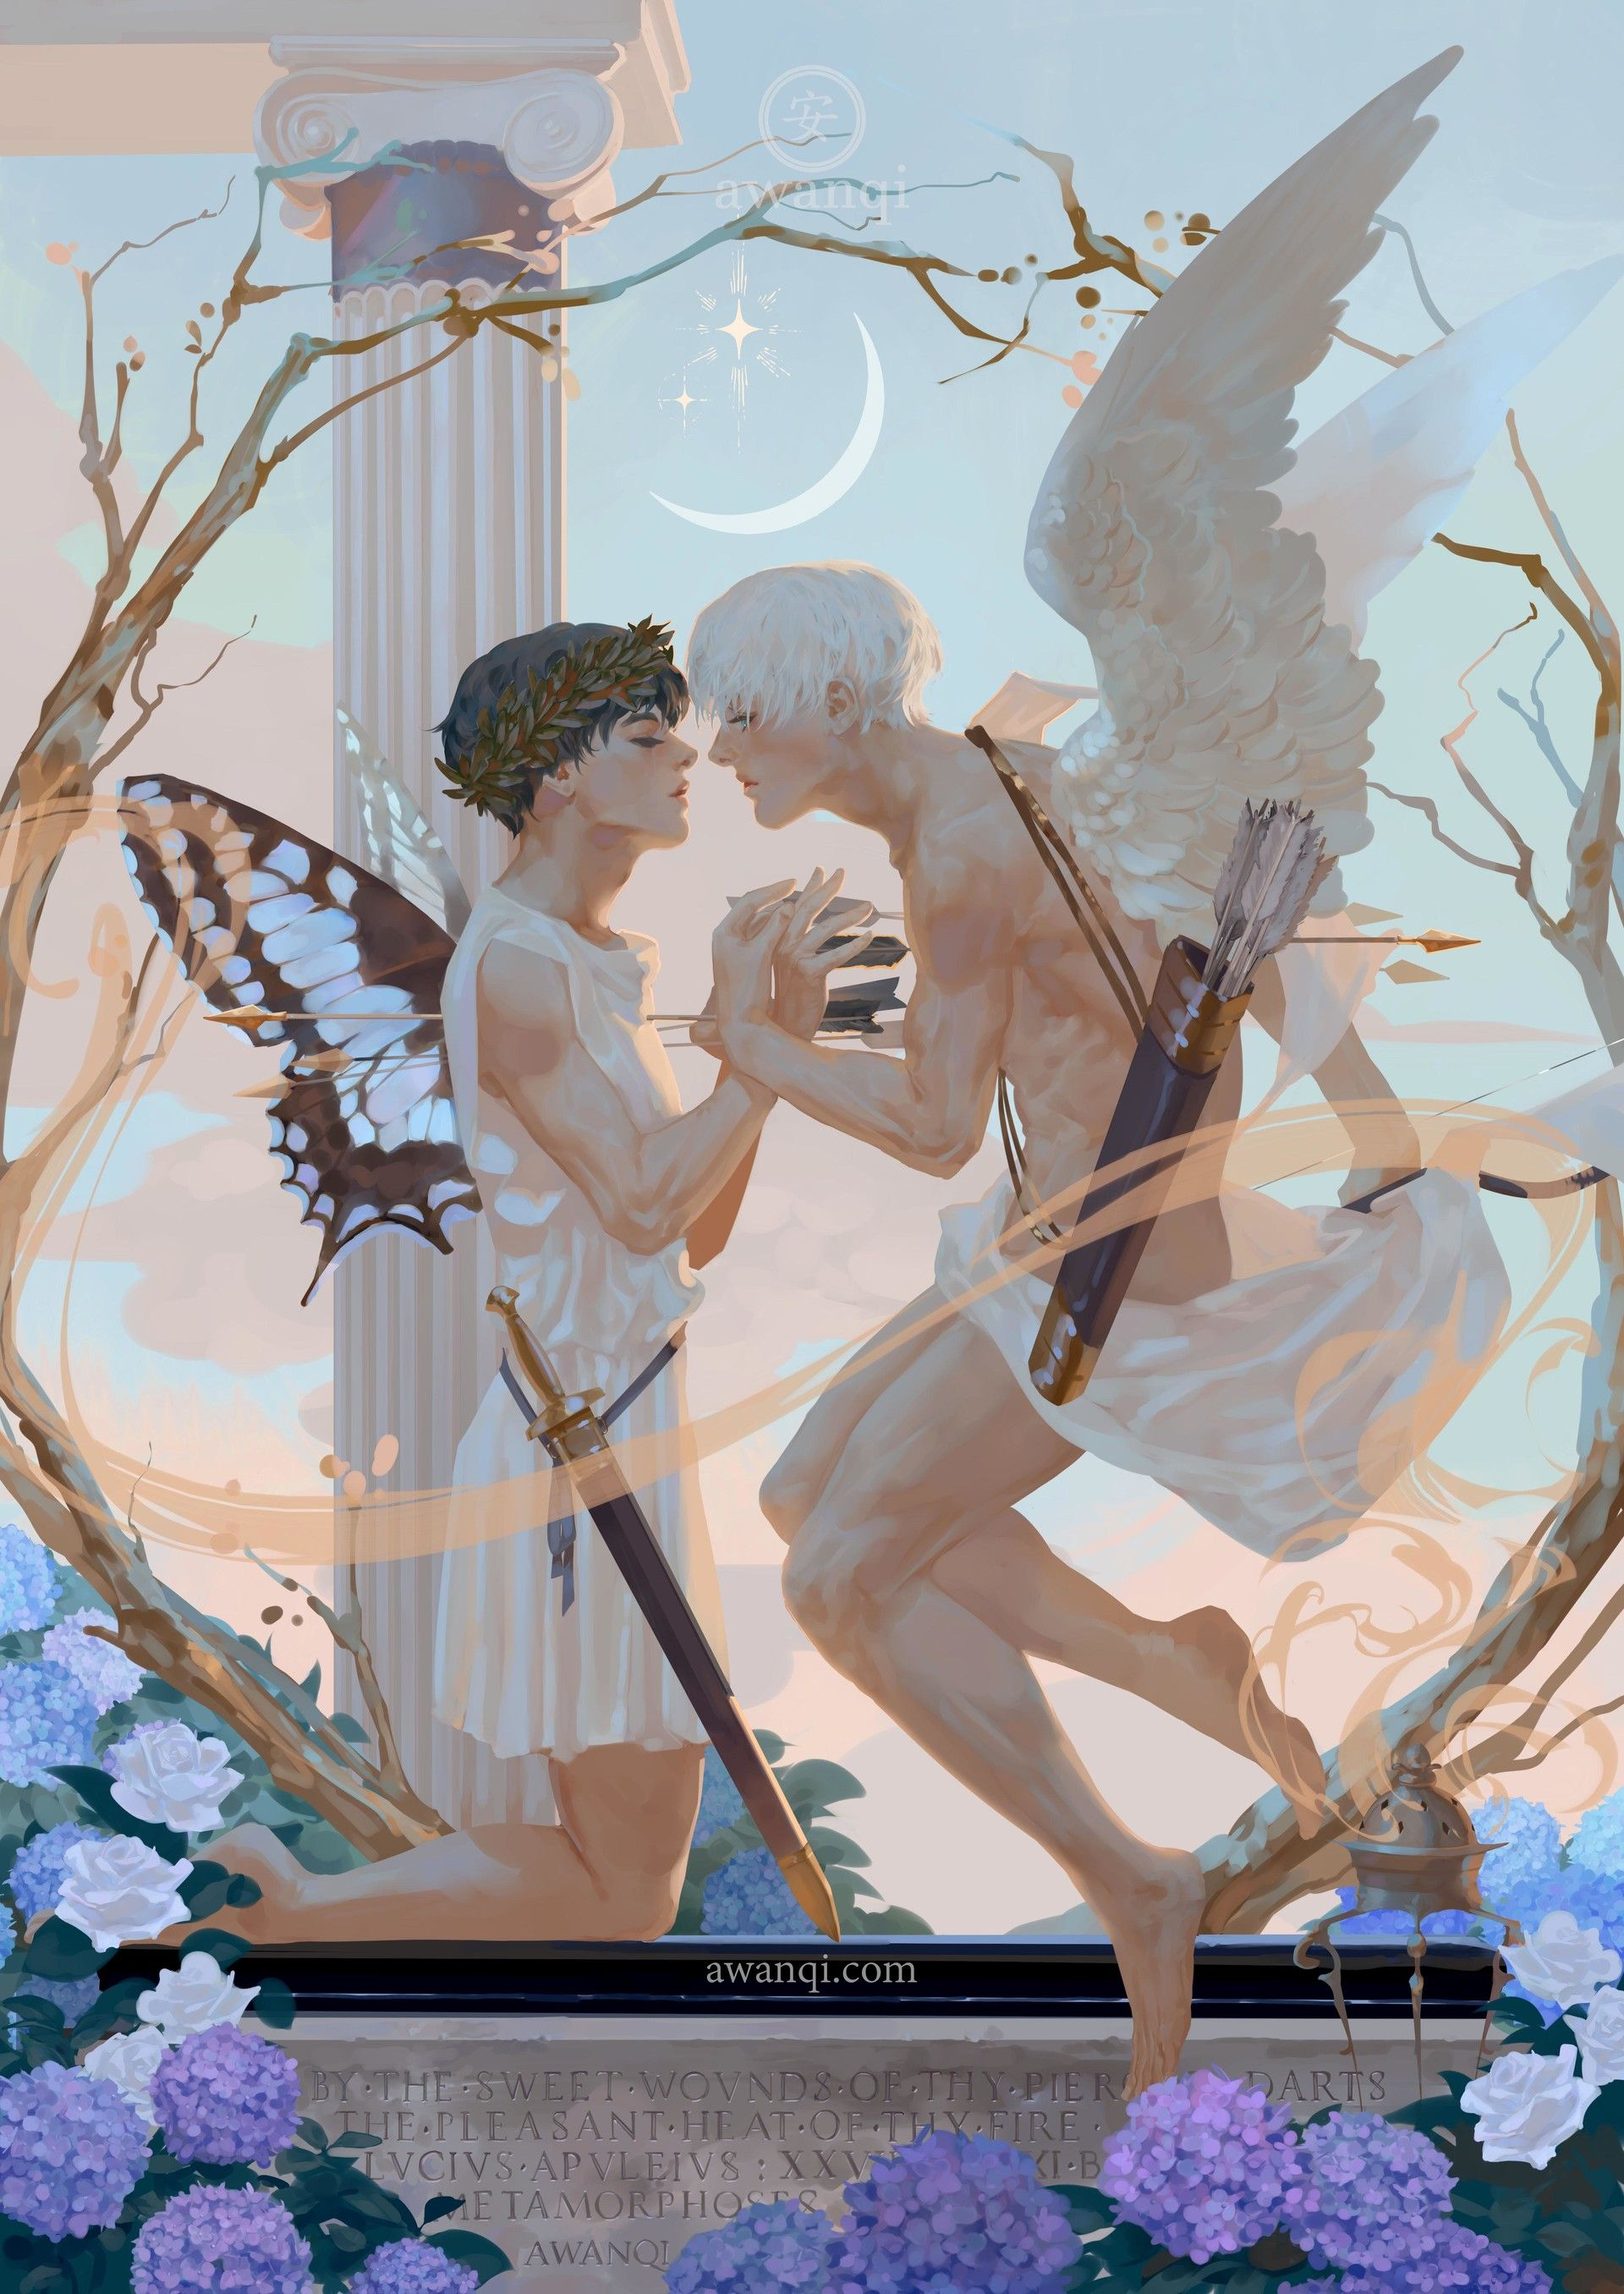 for a fanbook eros and psyche myth